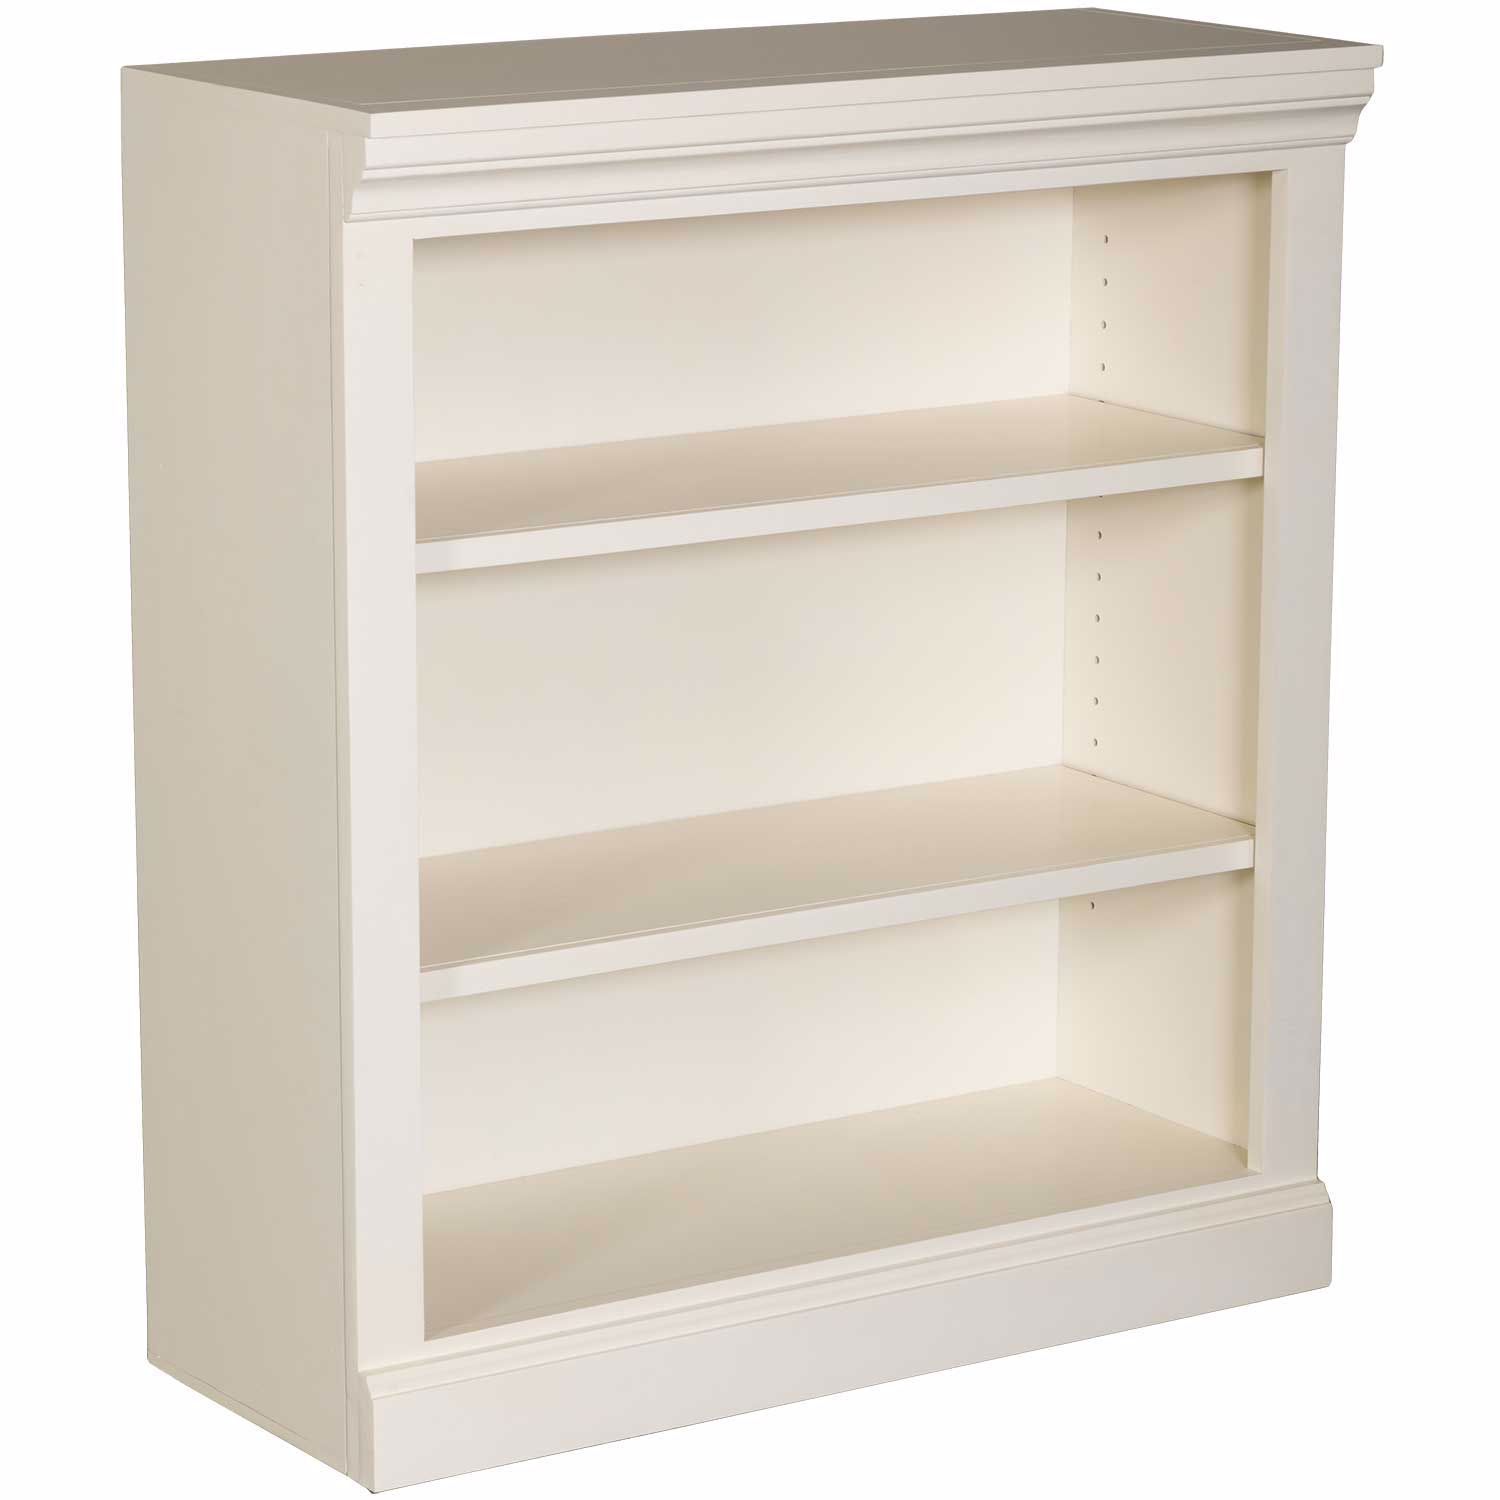 Picture of White Bookcase, 32 x 36